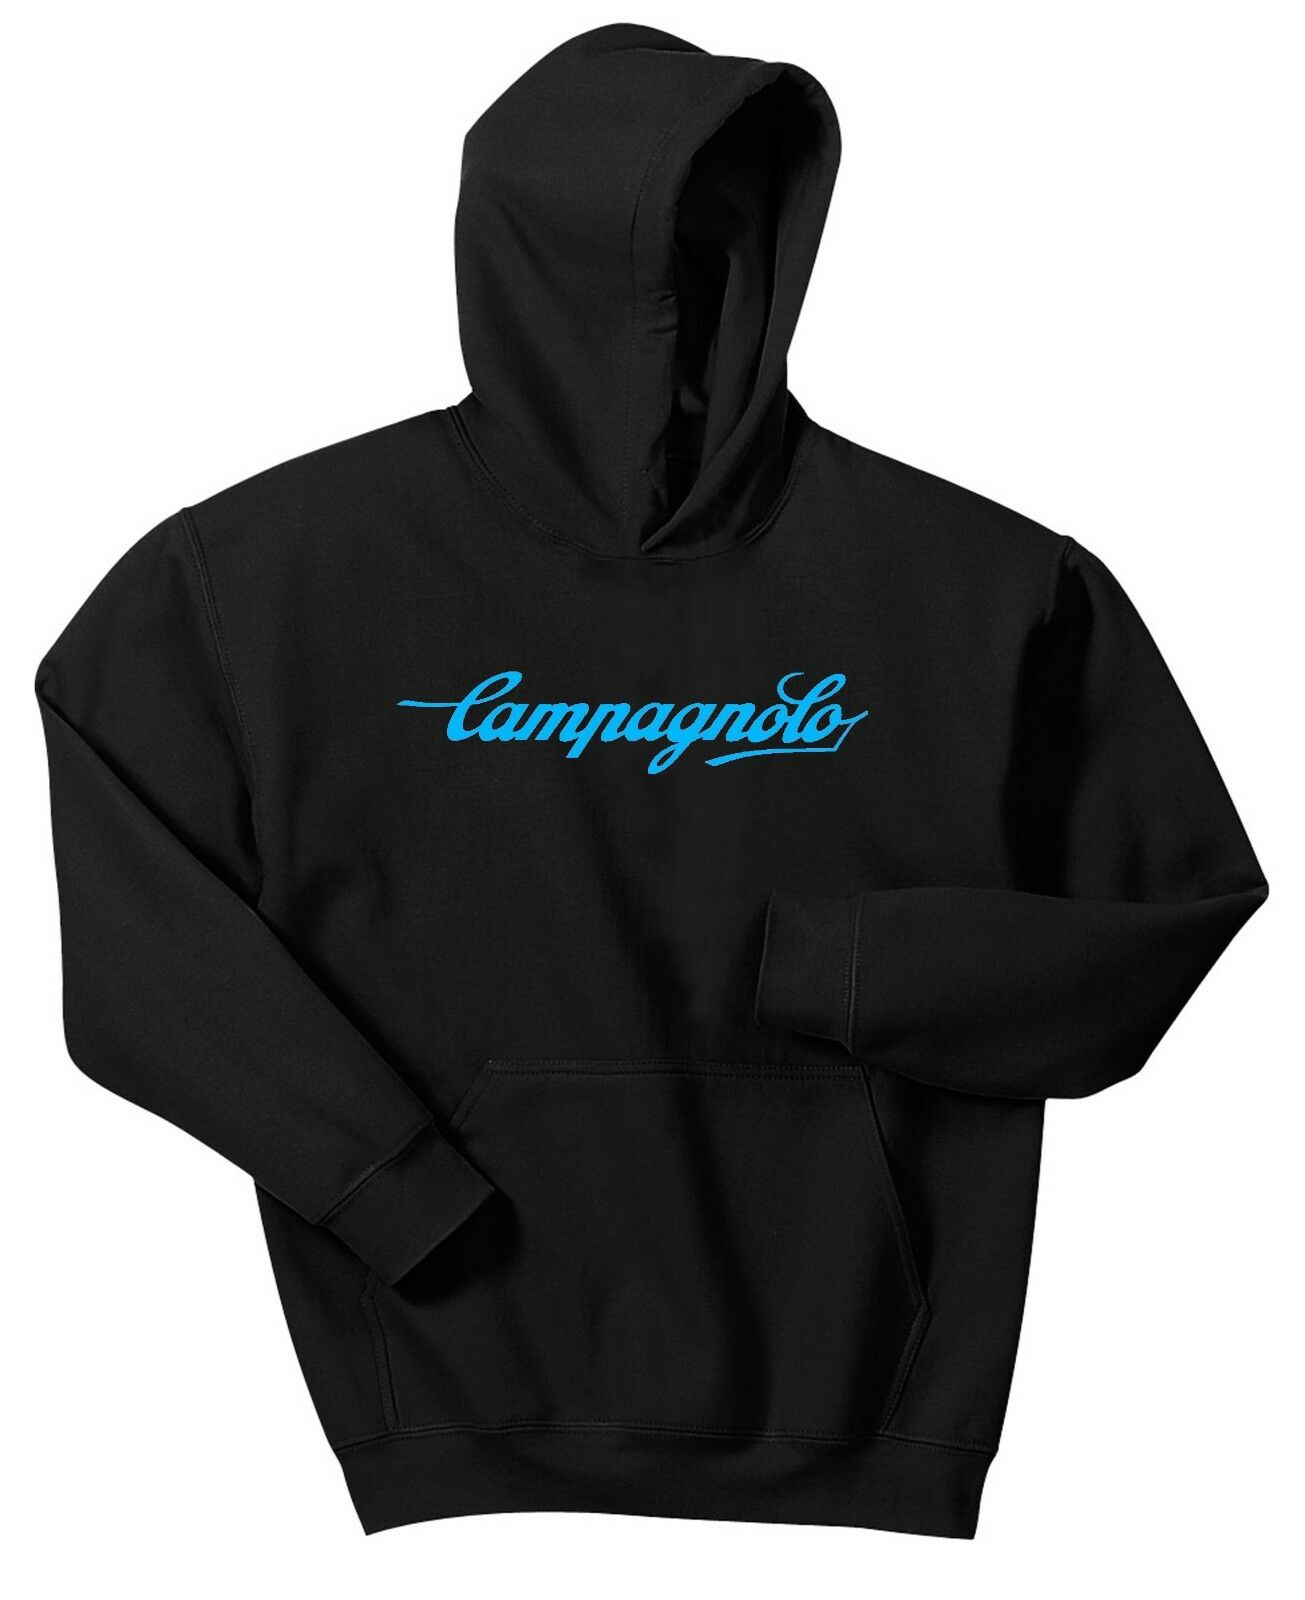 CAMPAGNOLO BICYCLE HOODIE SWEAT SHIRT ROAD BIKE RACE HARDWARE GROUP